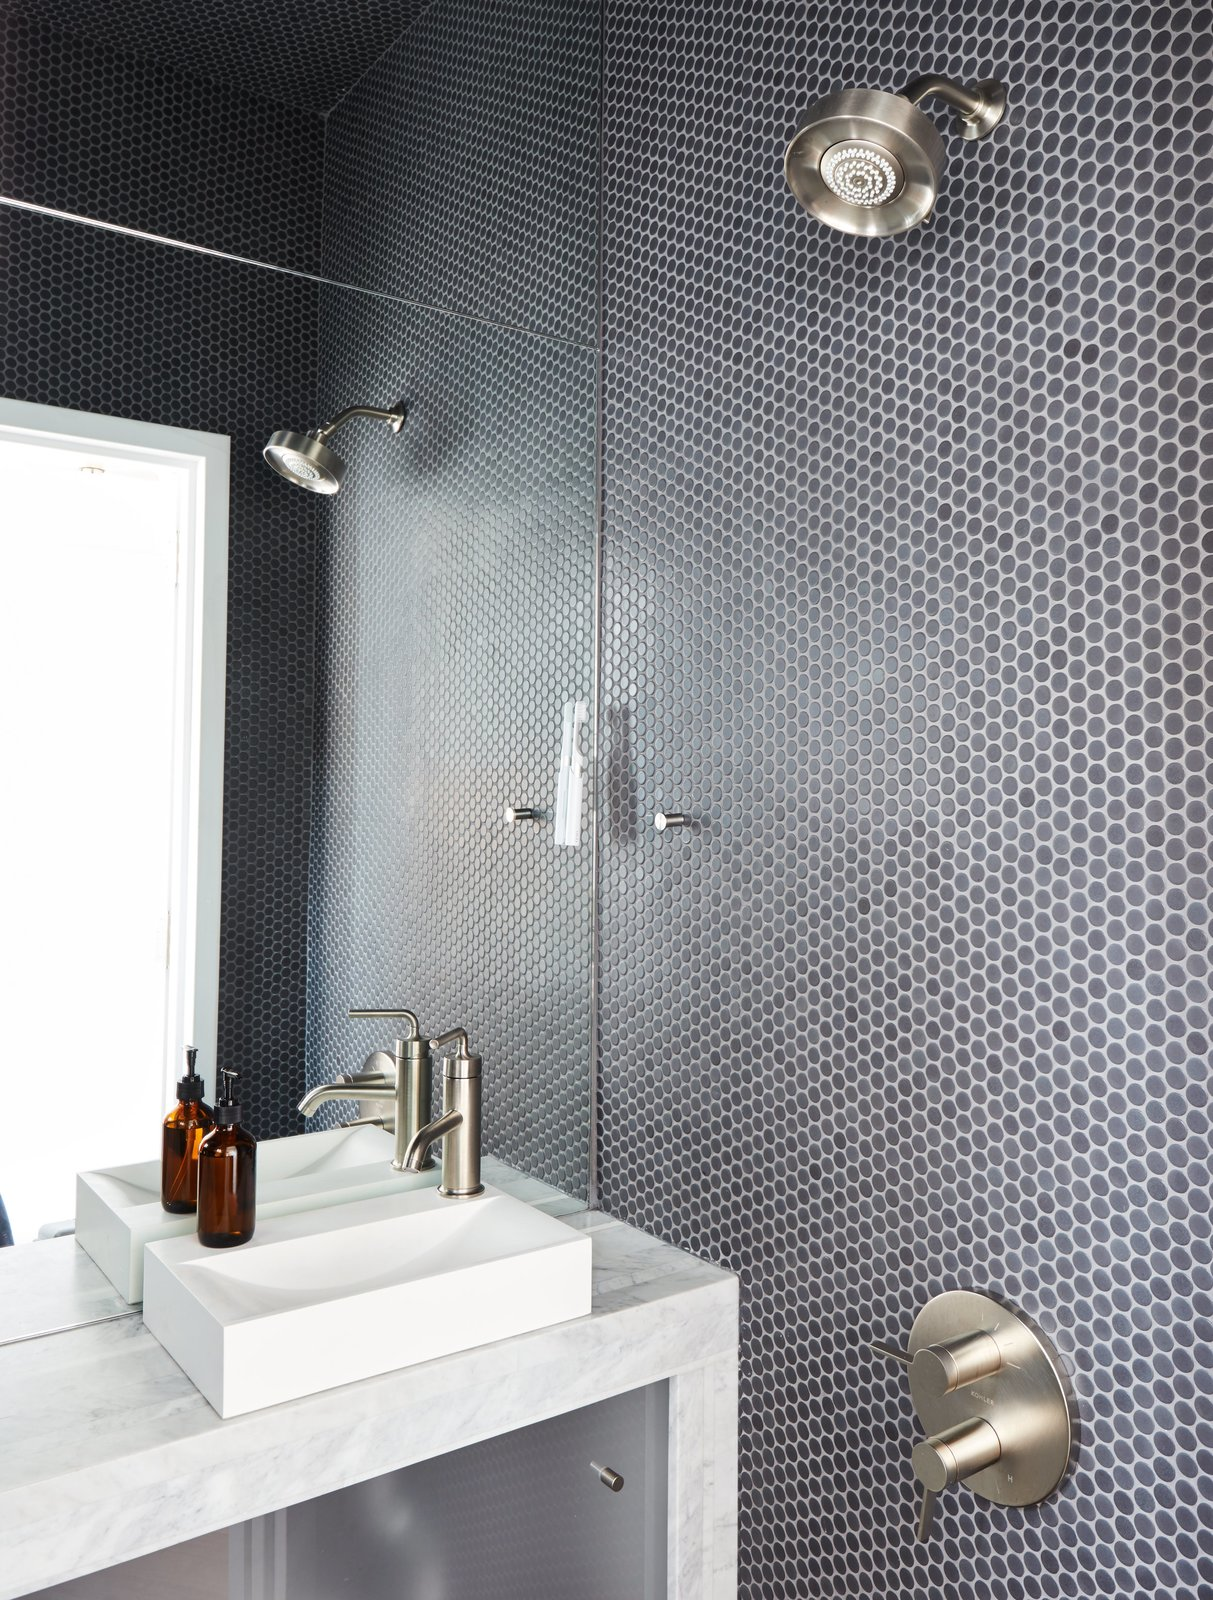 Bath Room, Open Shower, Mosaic Tile Wall, Marble Counter, and Vessel Sink The wet bathroom, clad in Savoy penny tile by Ann Sacks, helped optimize the home's petite footprint.  Photo 11 of 16 in At His 350-Square-Foot Apartment, Small Space Champion Graham Hill Practices What He Preaches